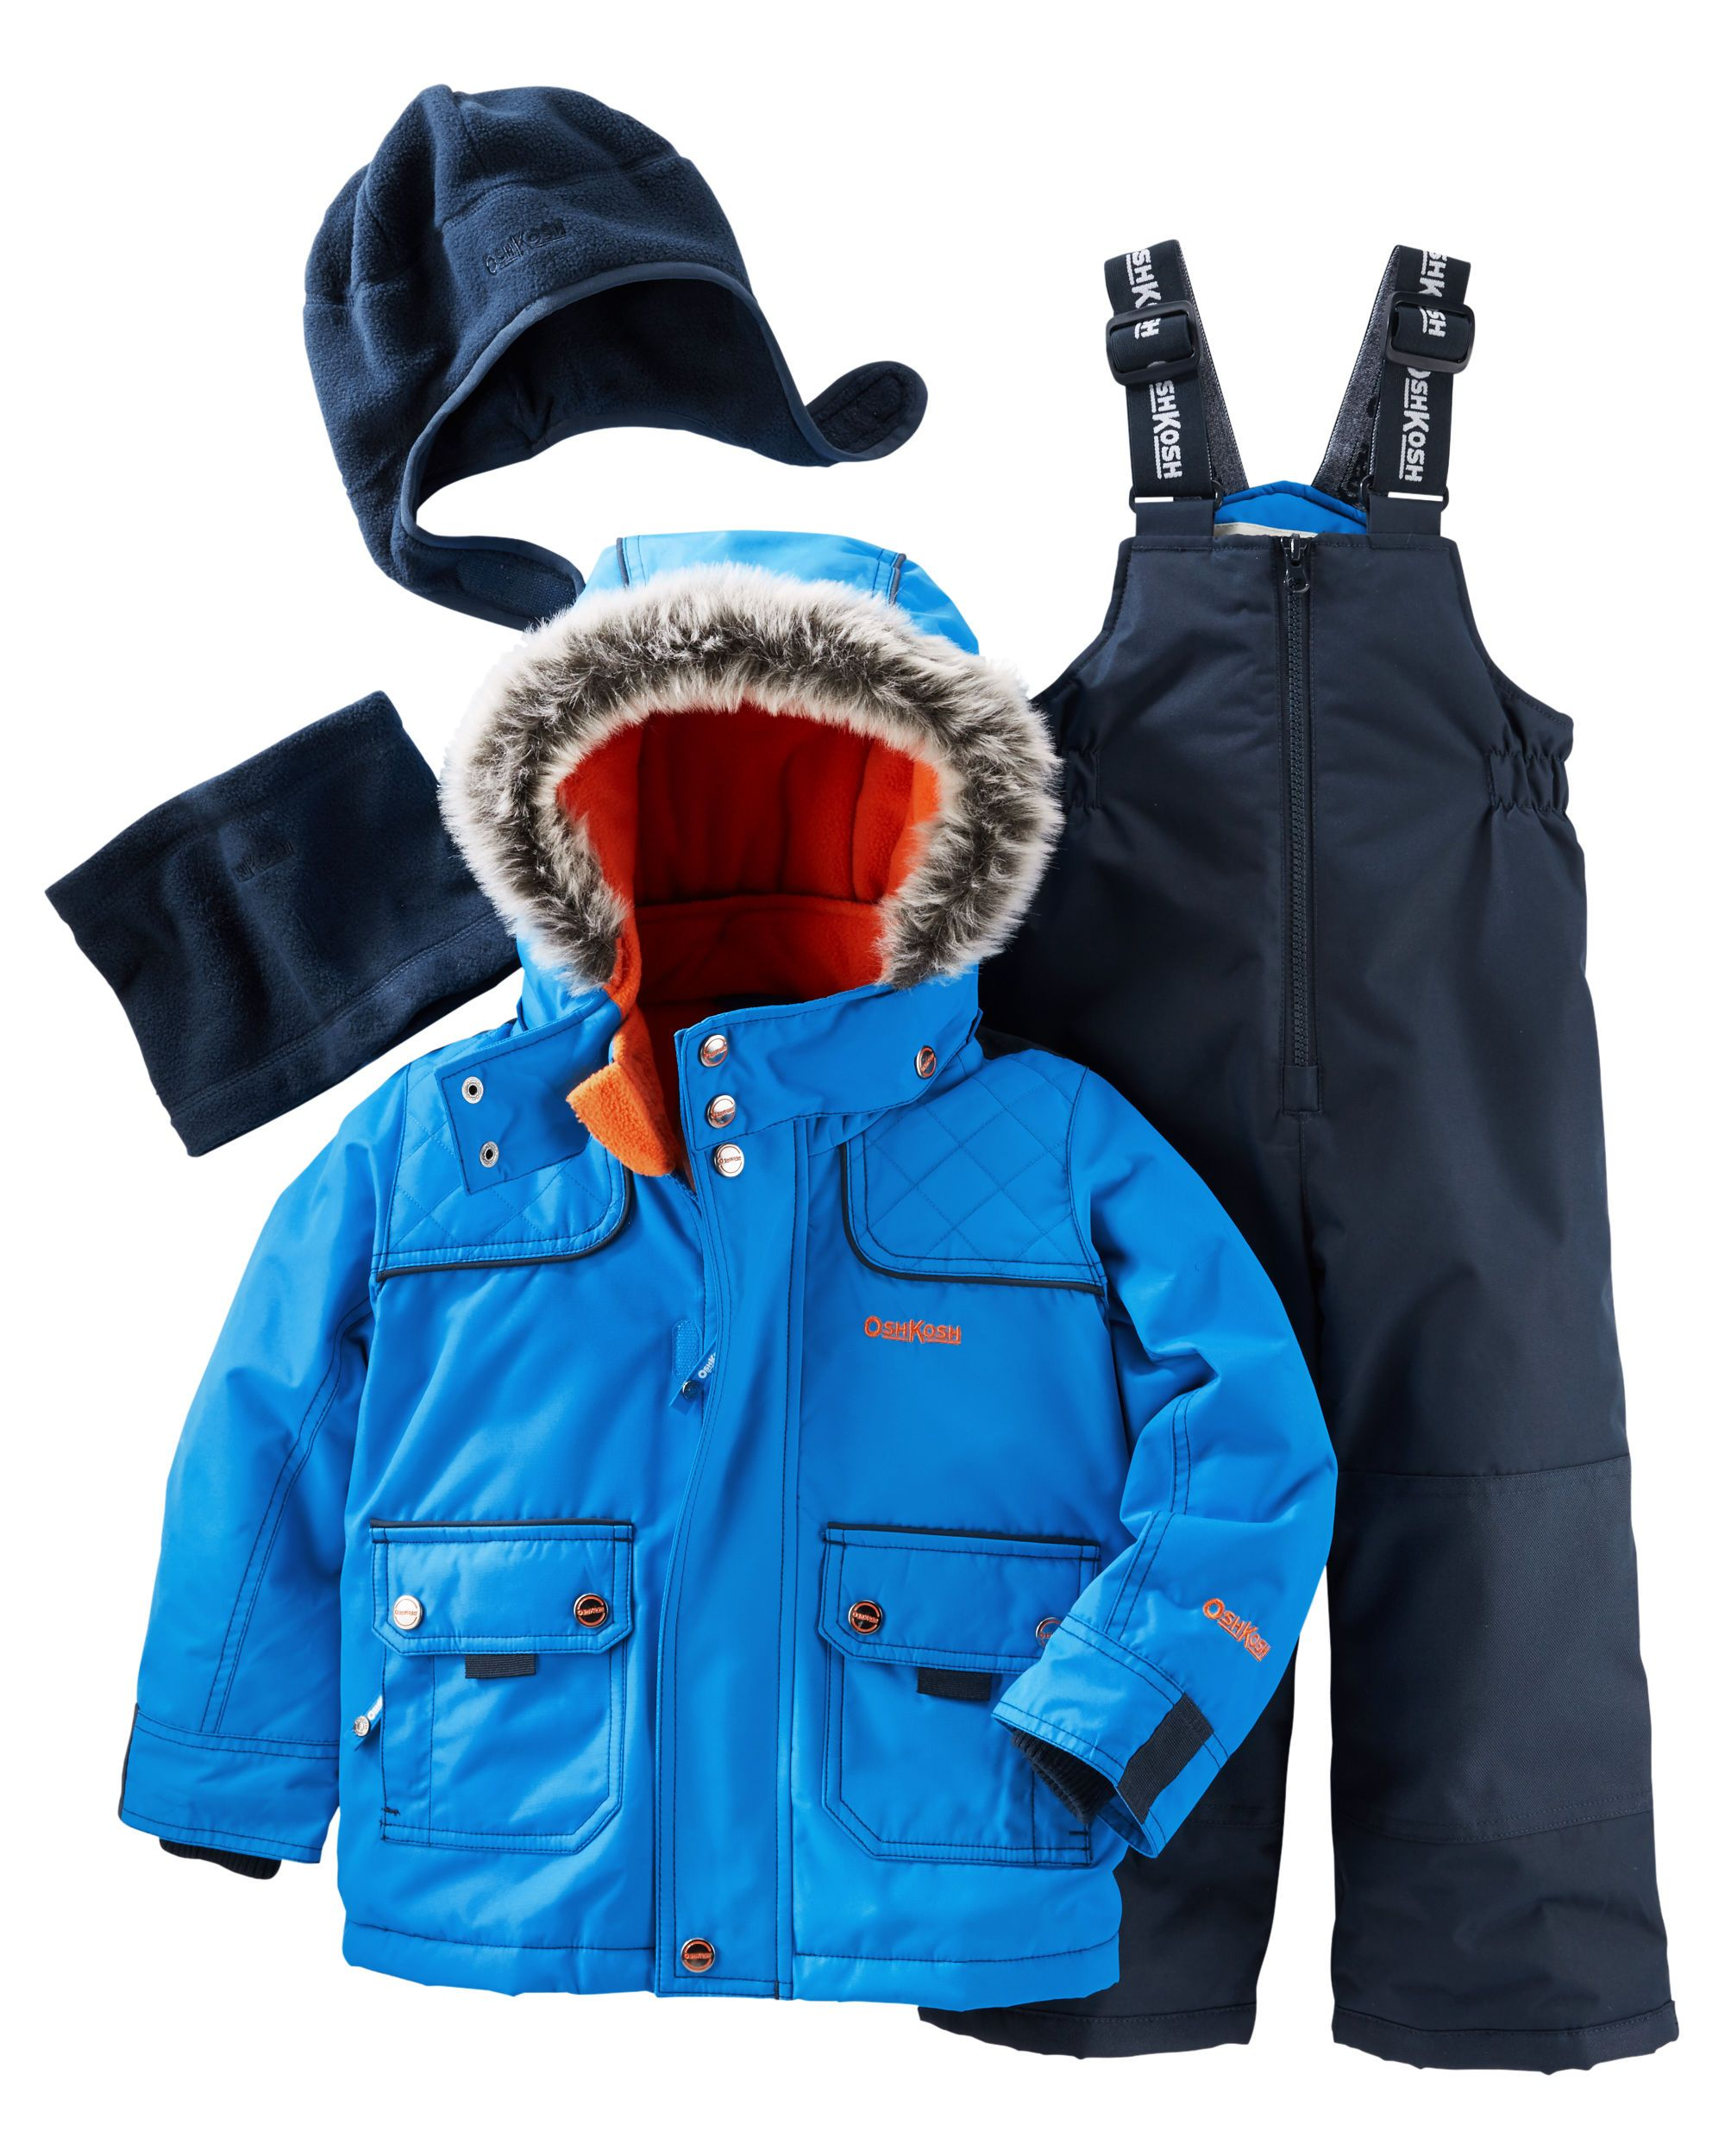 91428abce Toddler Boy 4-Piece Fleece-Lined Snowsuit Set | Carter's OshKosh Canada